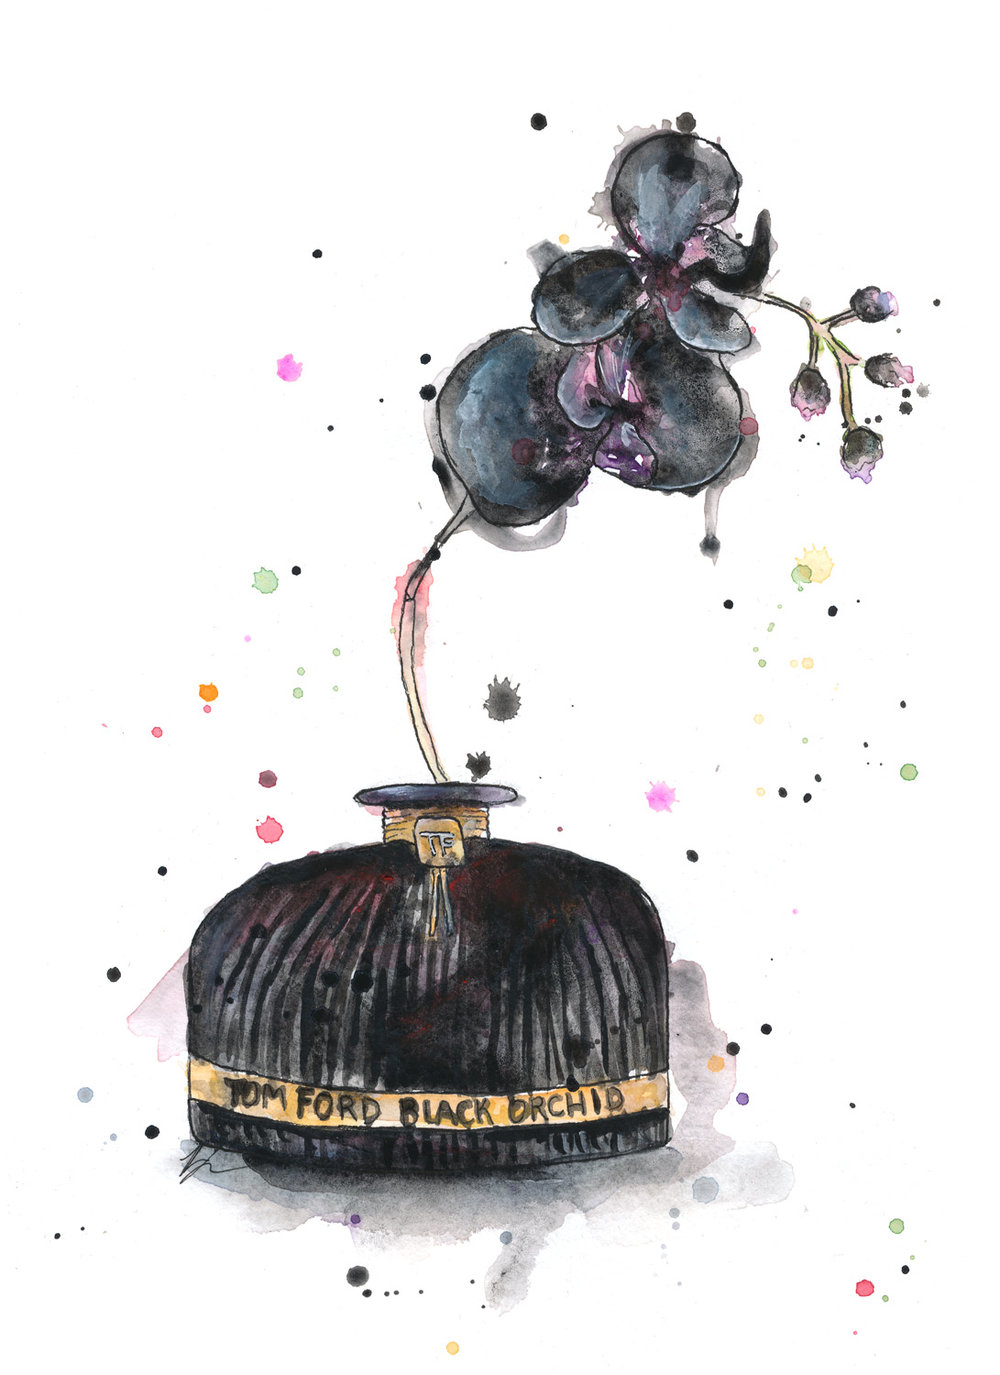 Benjamin-Edward-Tom-Ford-Black-Orchid-Perfume-watercolour-illustration.jpg